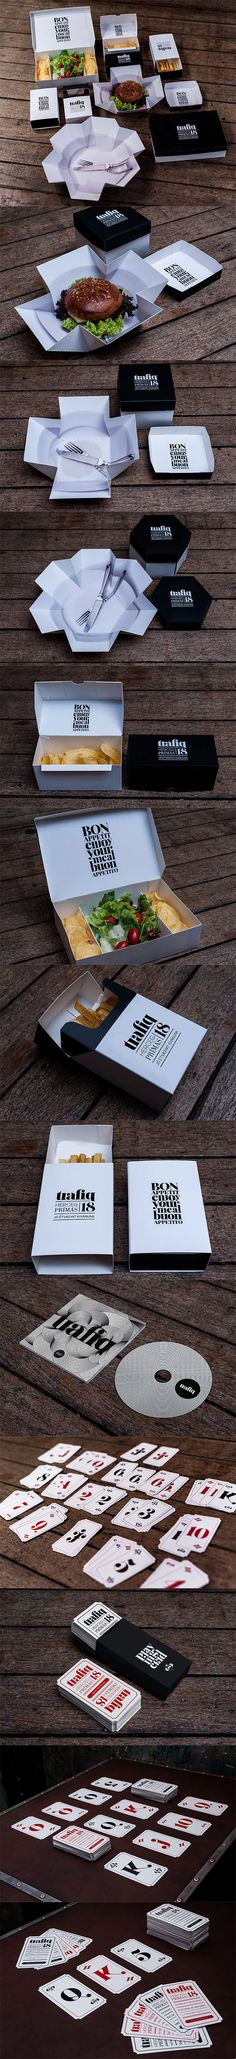 Food Packaging - great use of design, type, minimalist color #packaging #branding #marketing